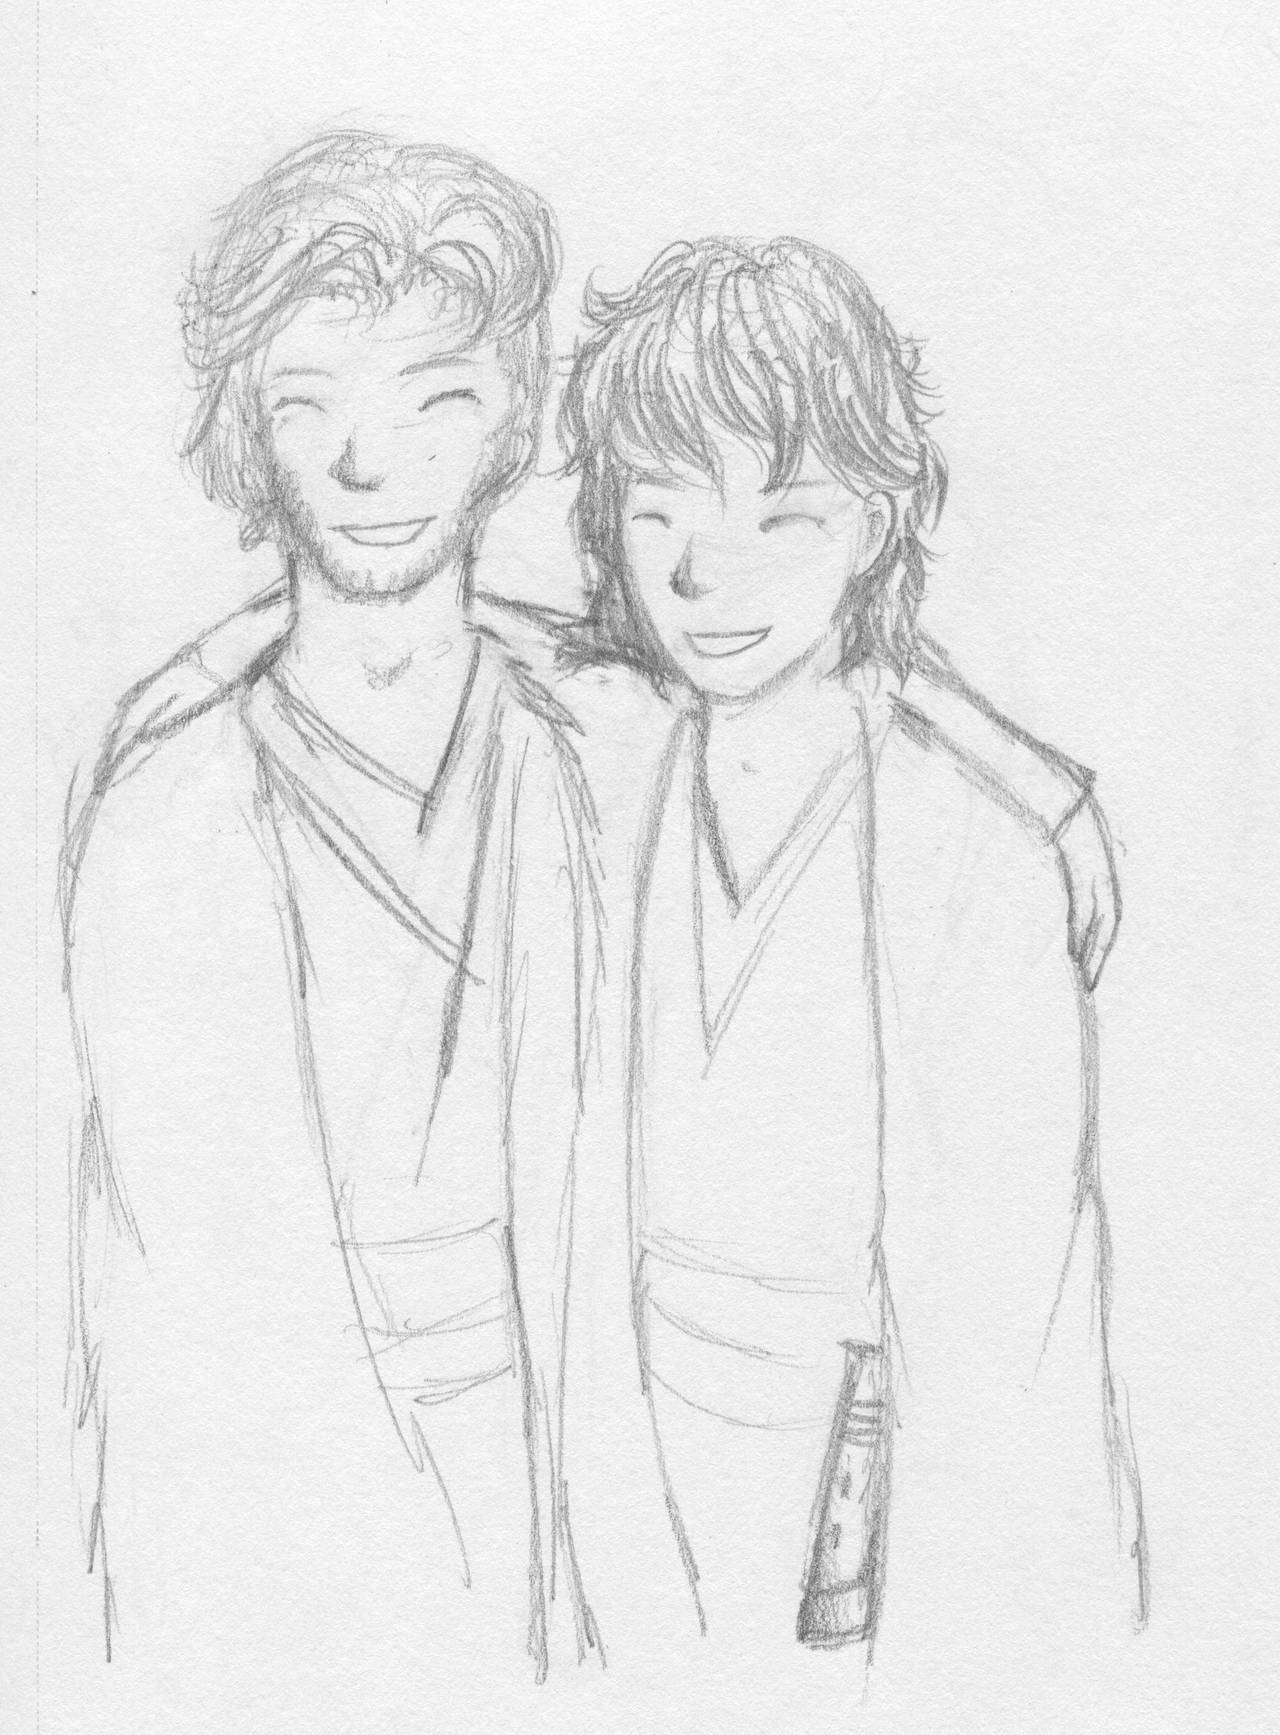 You were my brother-Obi-wan and Anakin by Bloodfox799 on